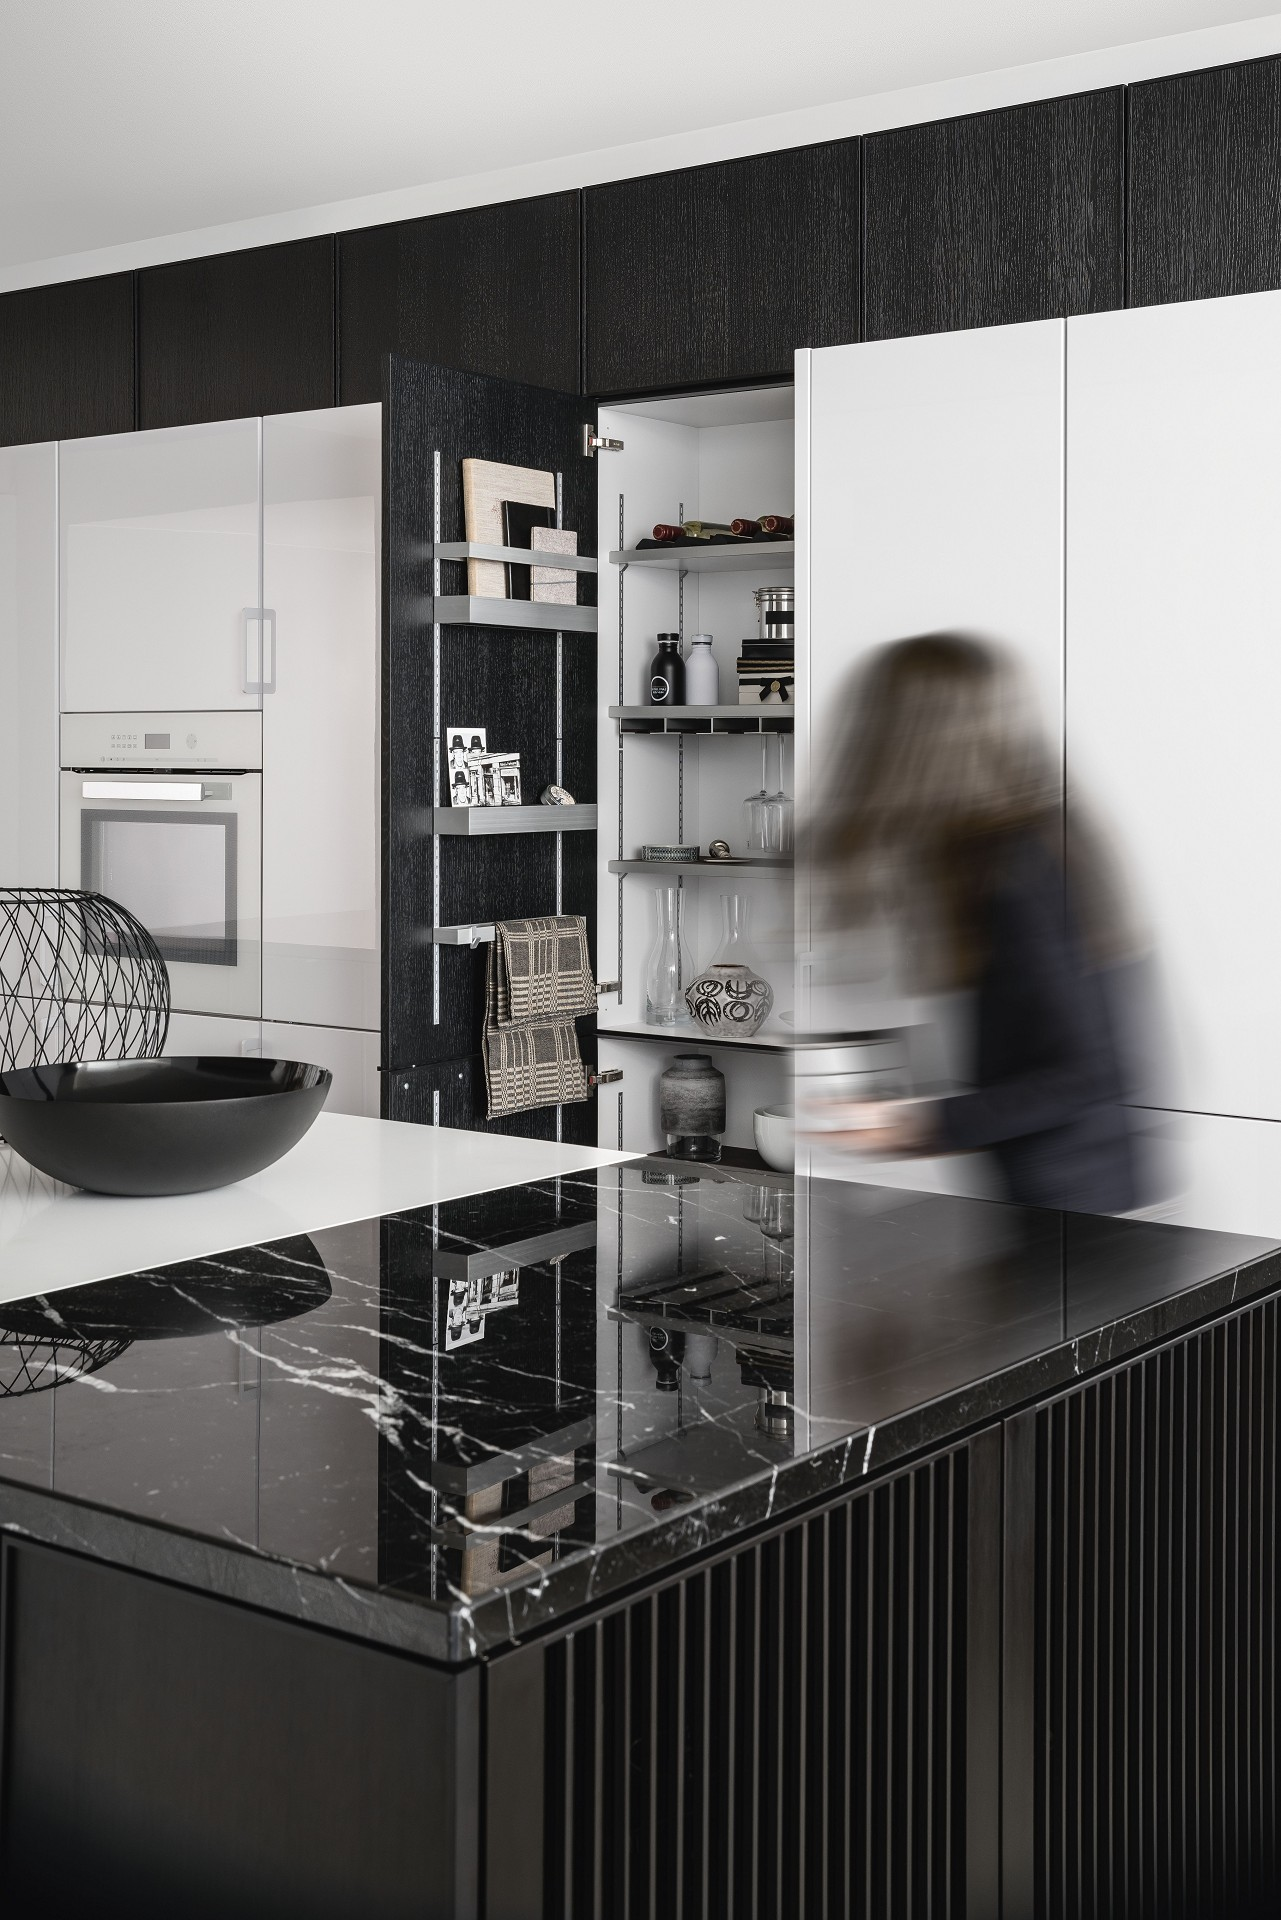 SieMatic Pure SE 3003 R colonna in rovere nero opaco con sistema di attrezzatura interna SieMatic MultiMatic .